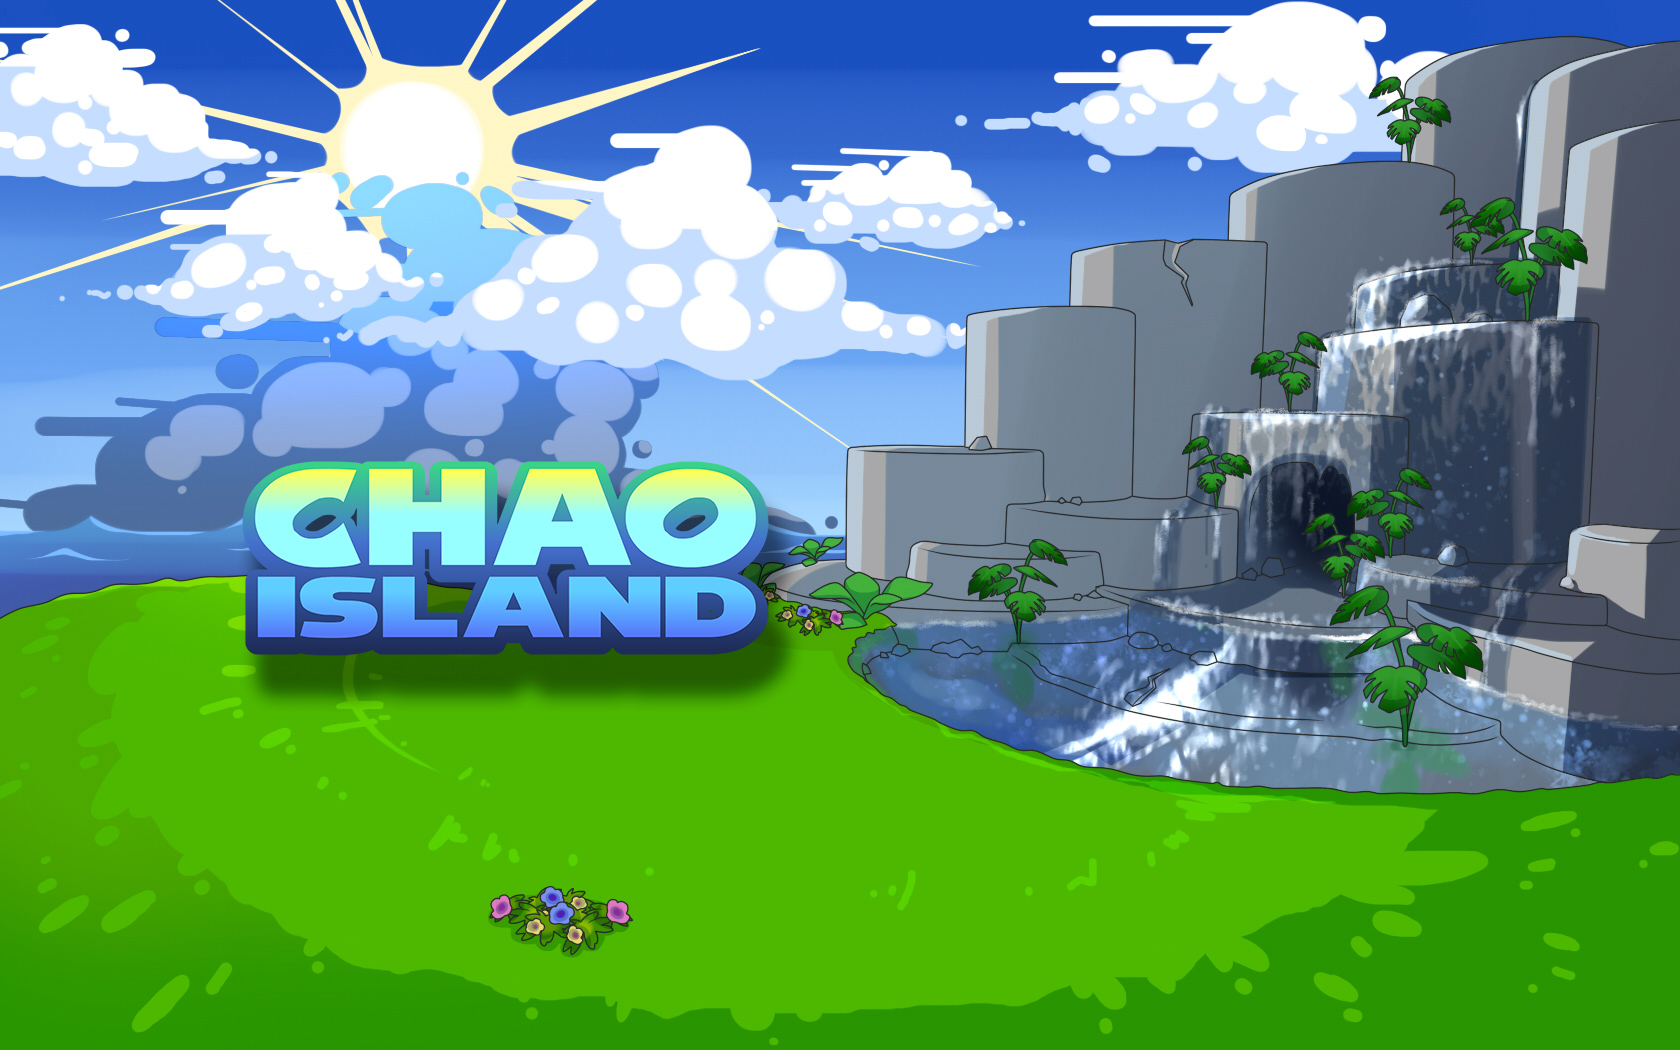 Chao Island - Your number one source for Chao information!